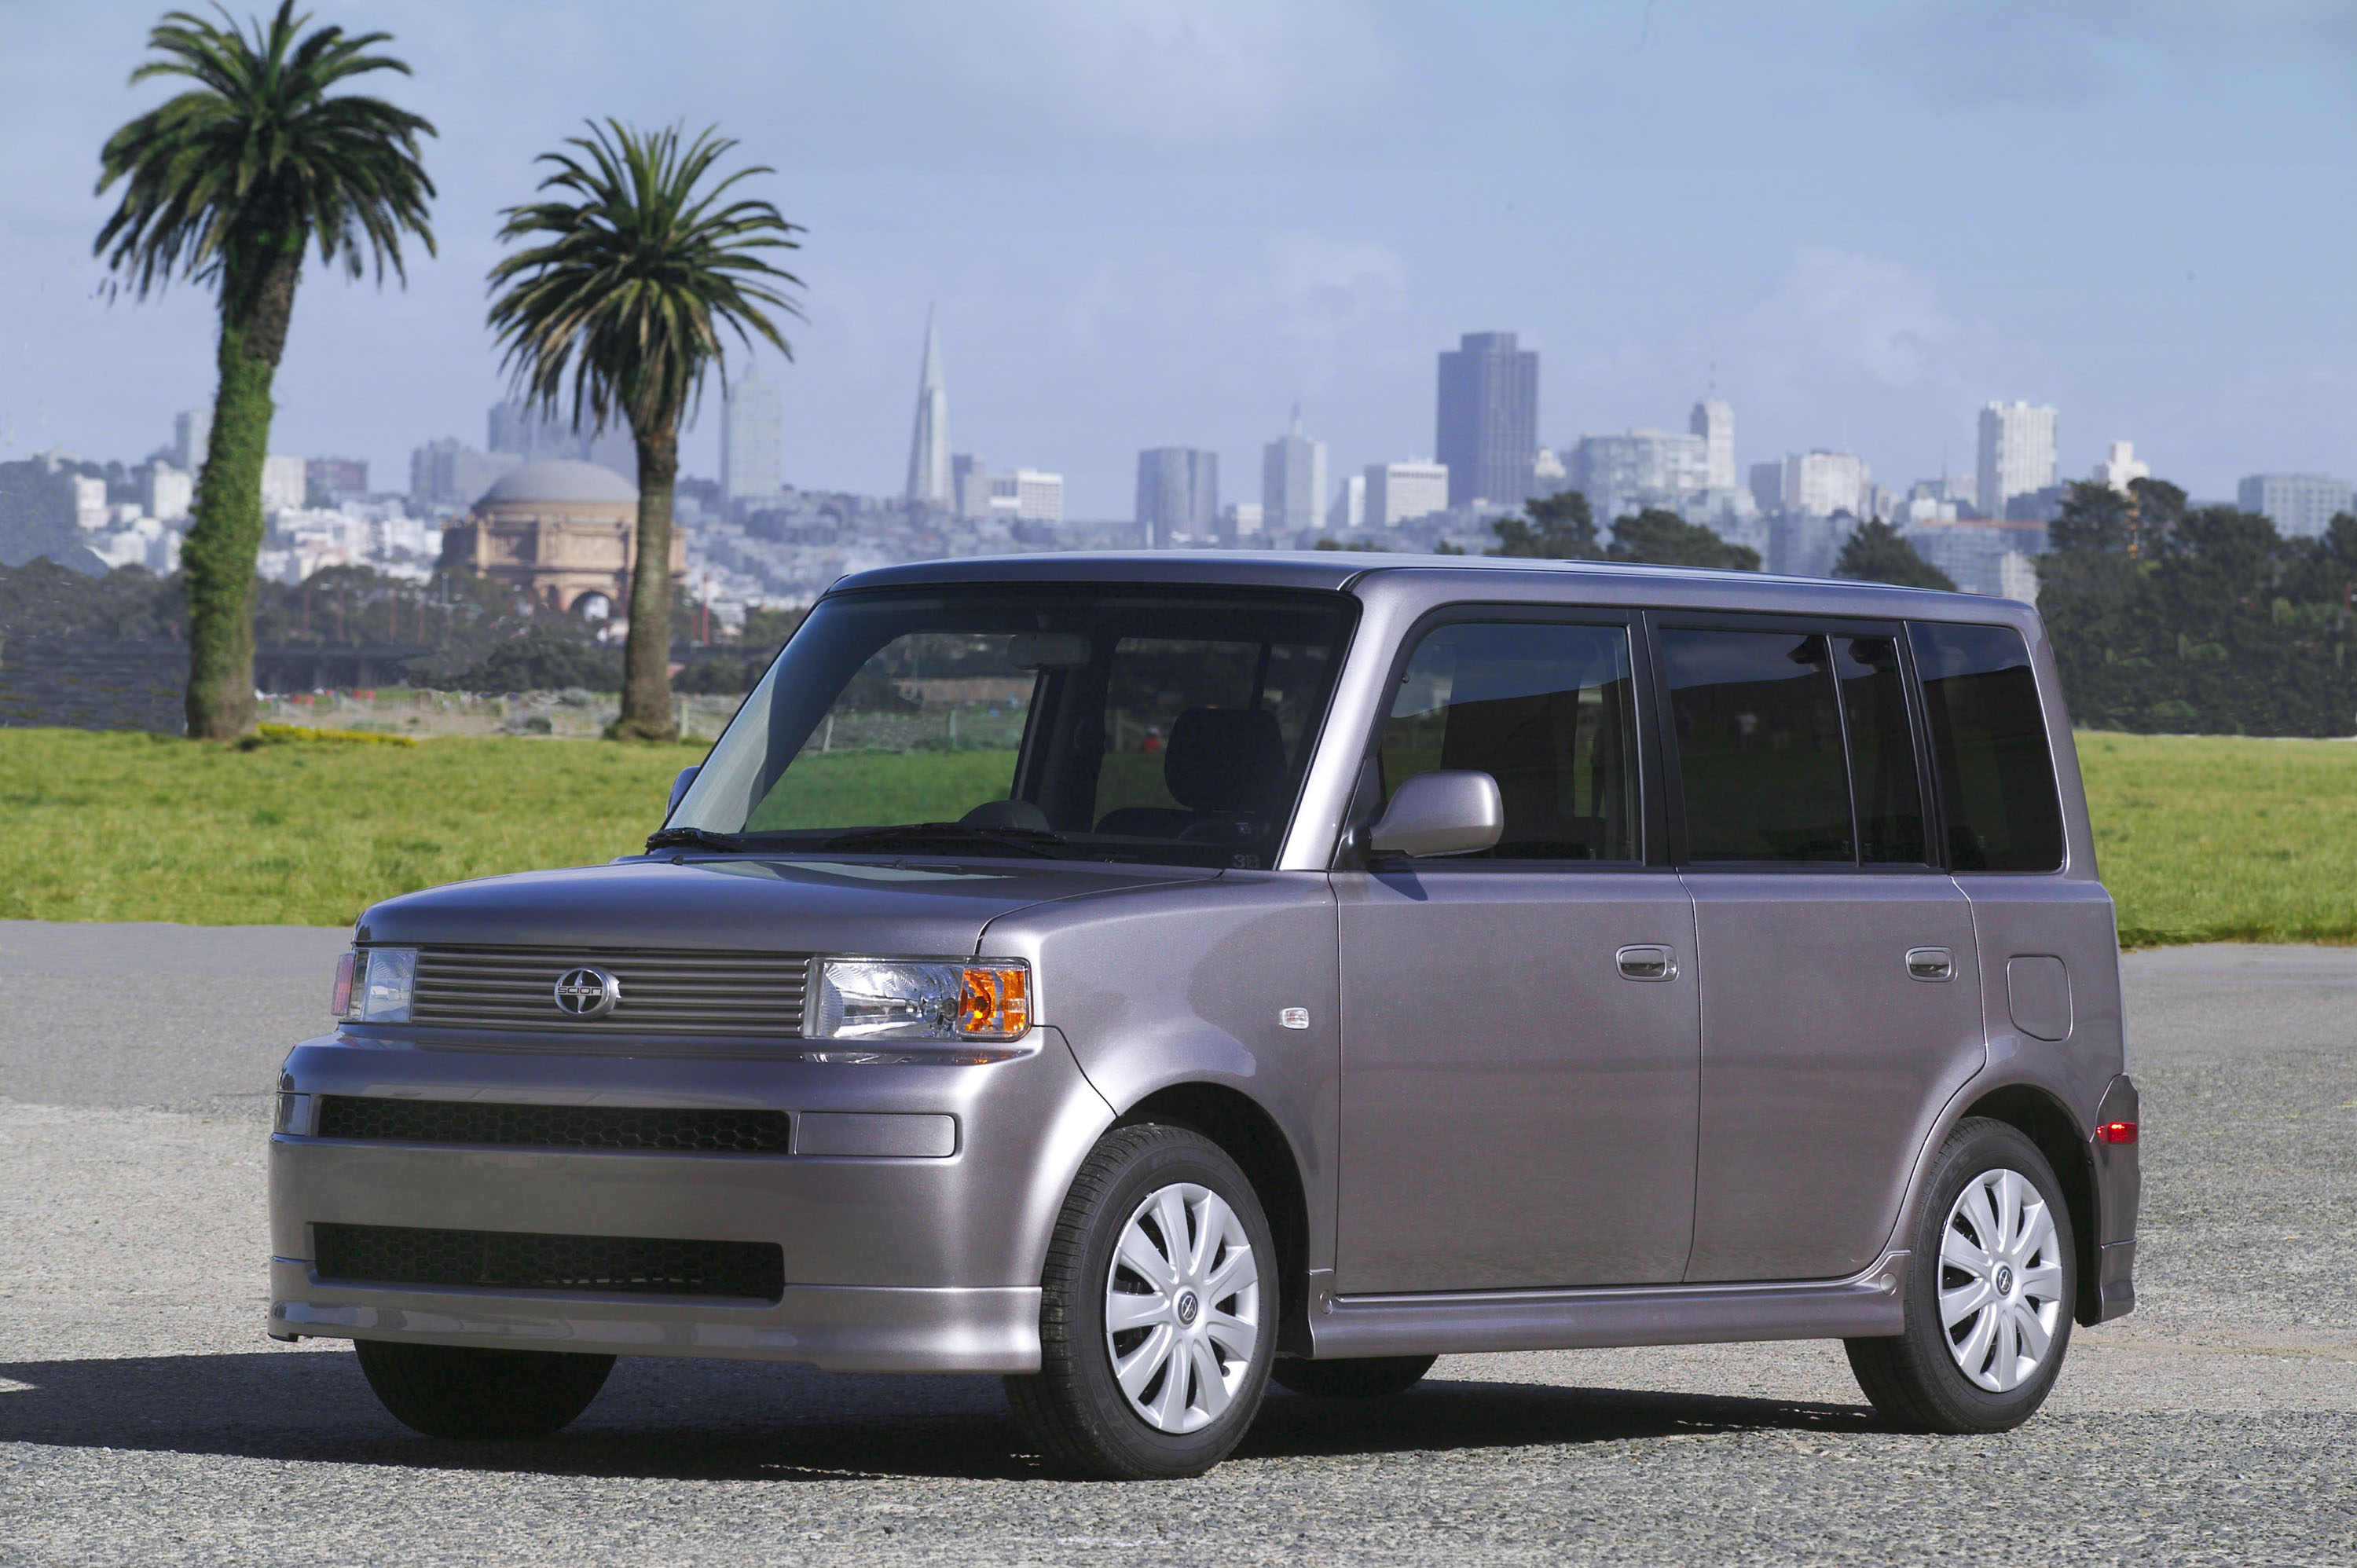 specs toyota car scion s xb blog radka photos makes news